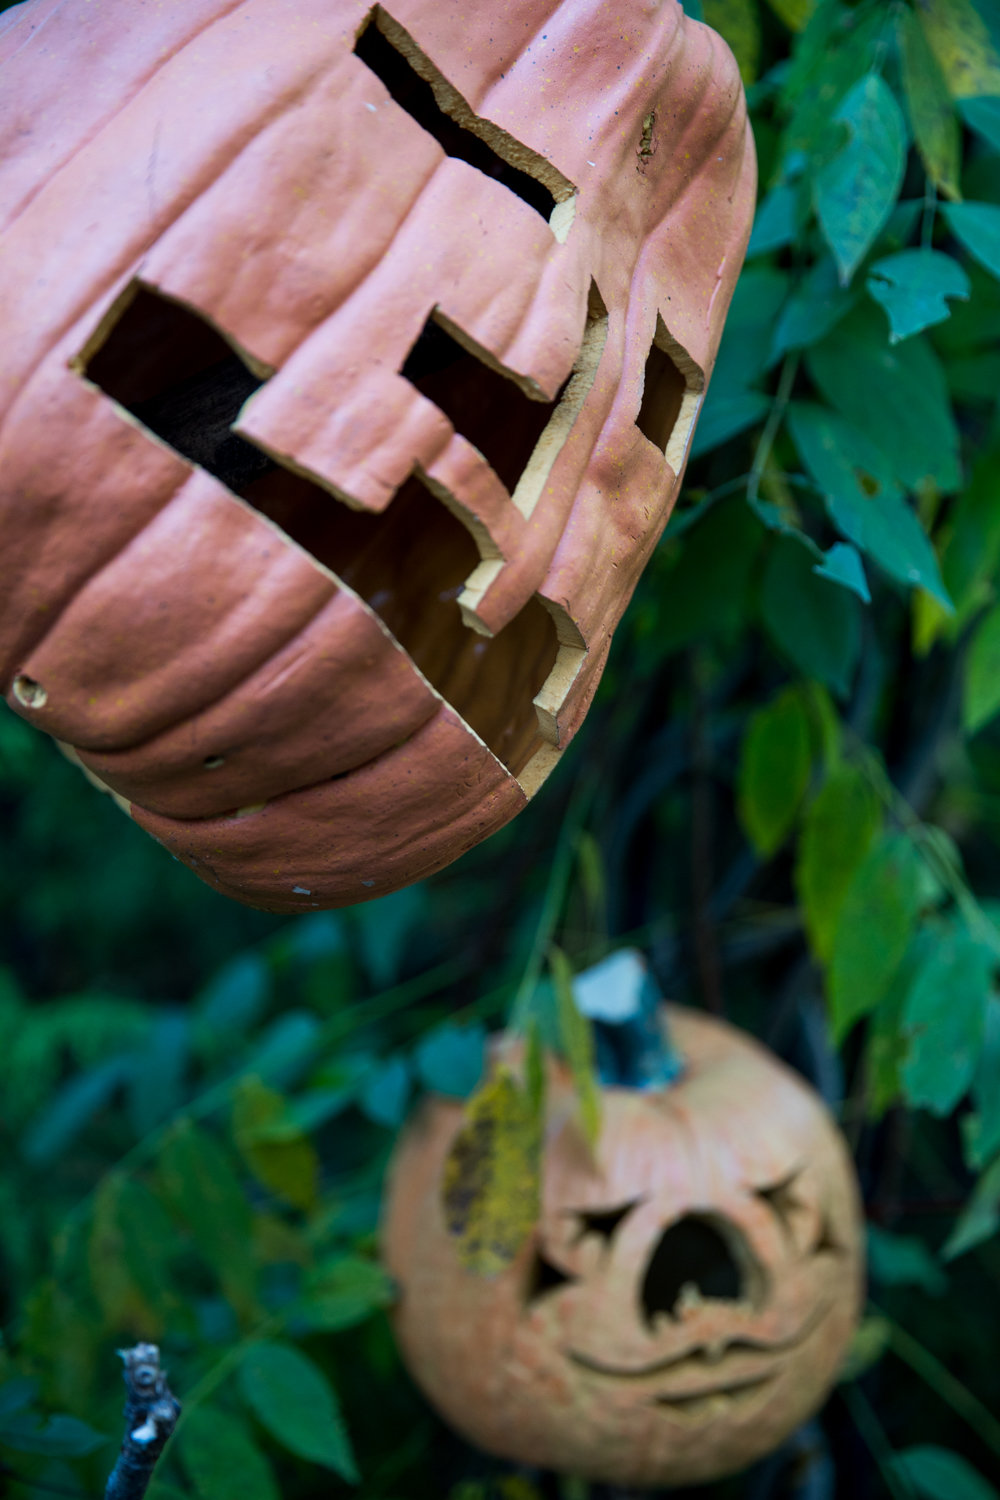 The New York Botanical Garden brought the spooky cheer with pumpkin-headed scarecrows in the Spooky Pumpkin Garden.